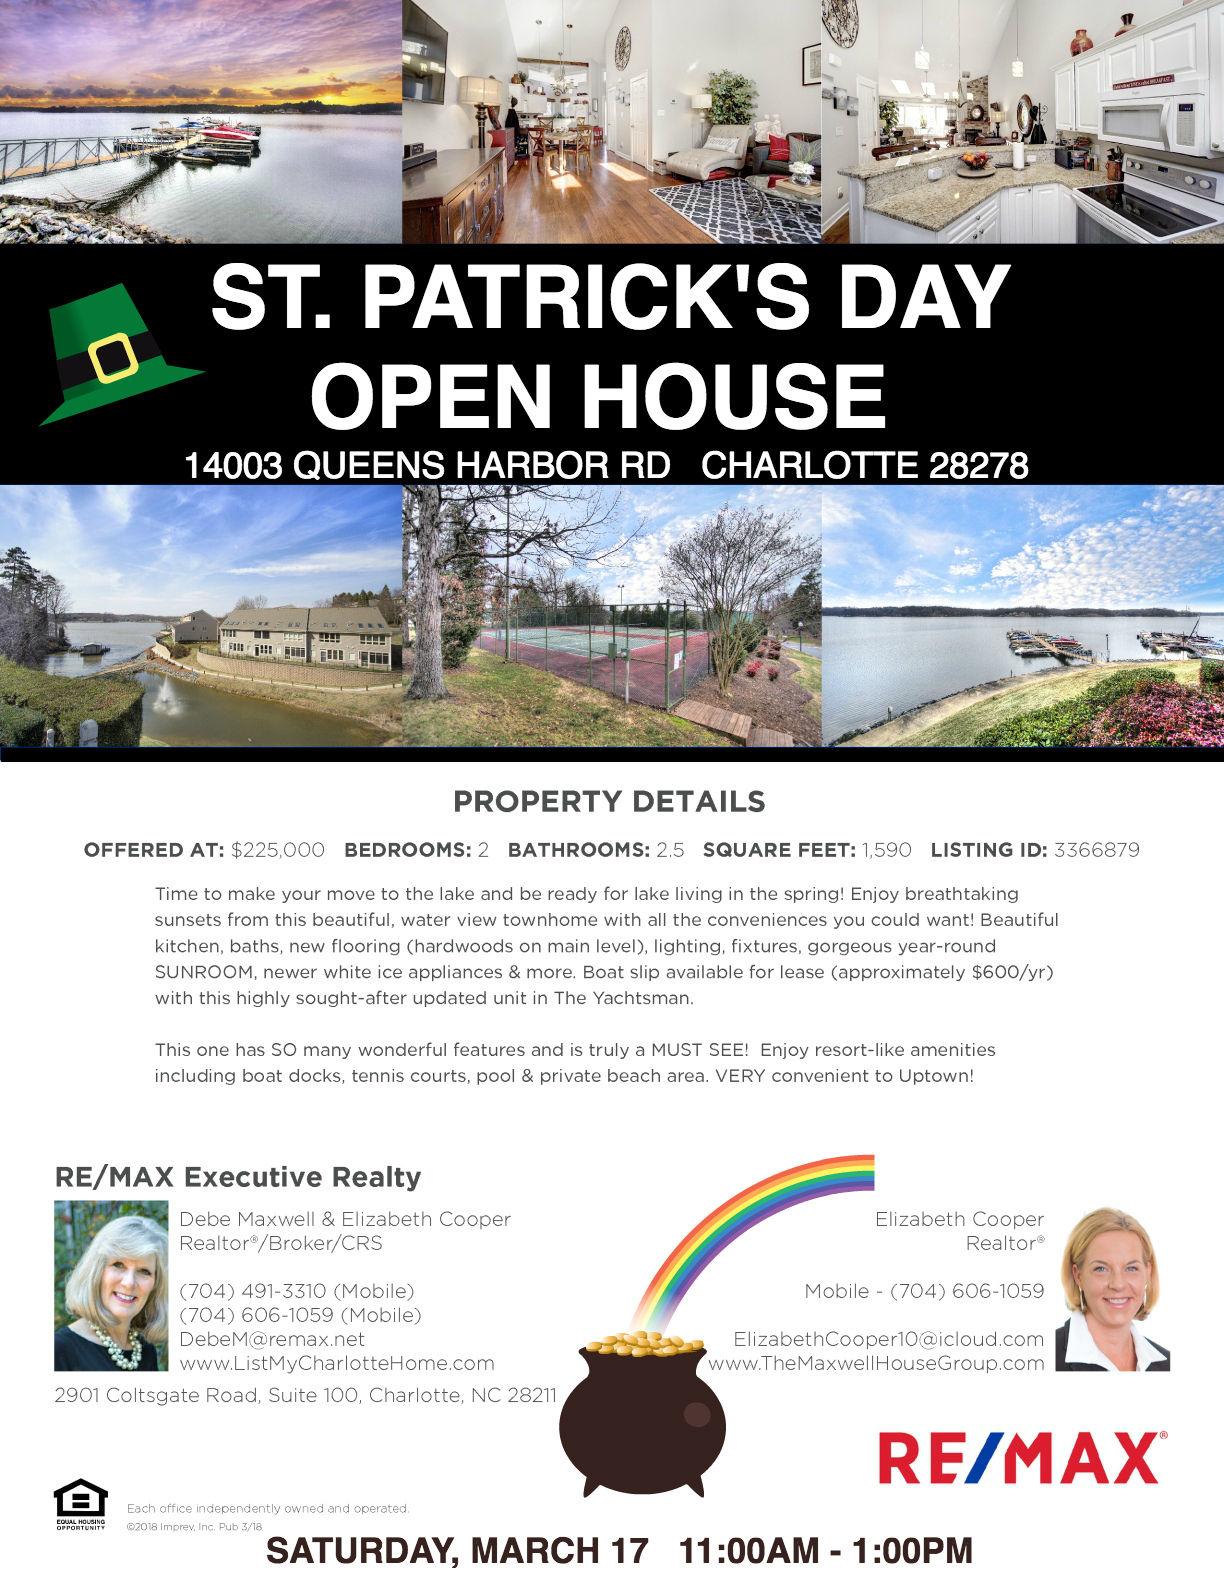 Lake Wylie Open House SATURDAY 3/17 11-1